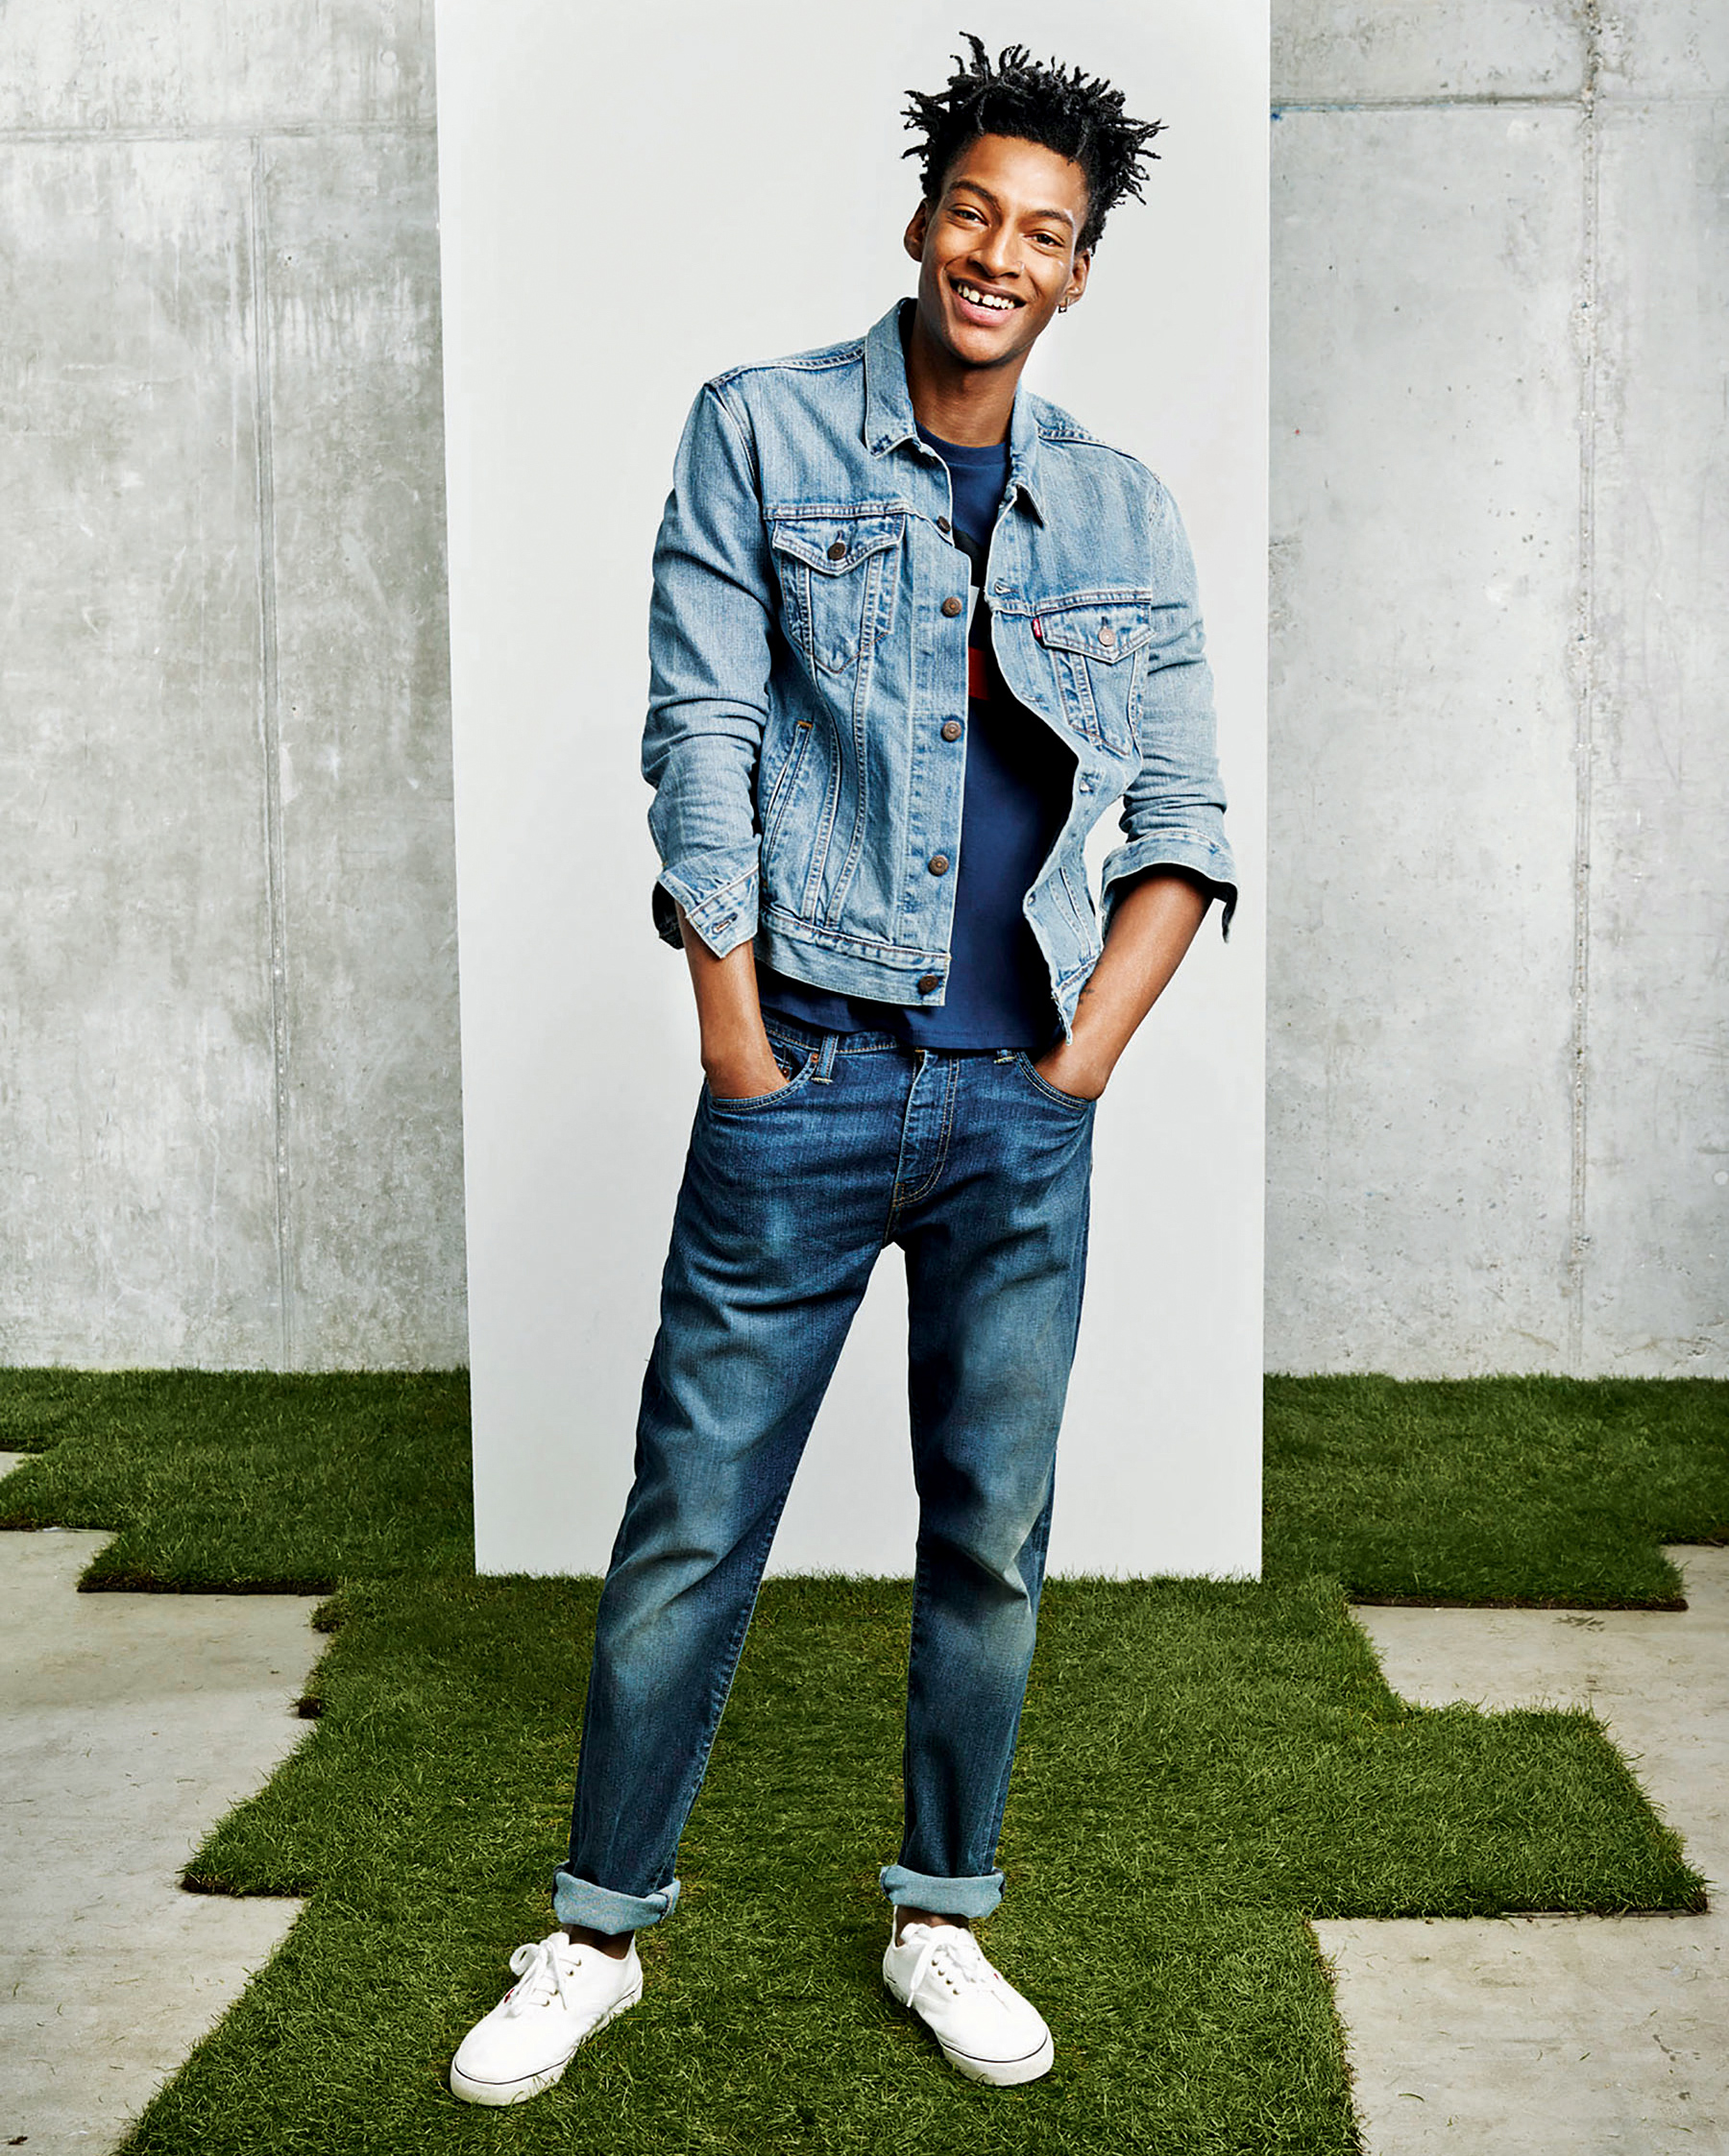 The comeback of loose-cut jeans for men | How To Spend It